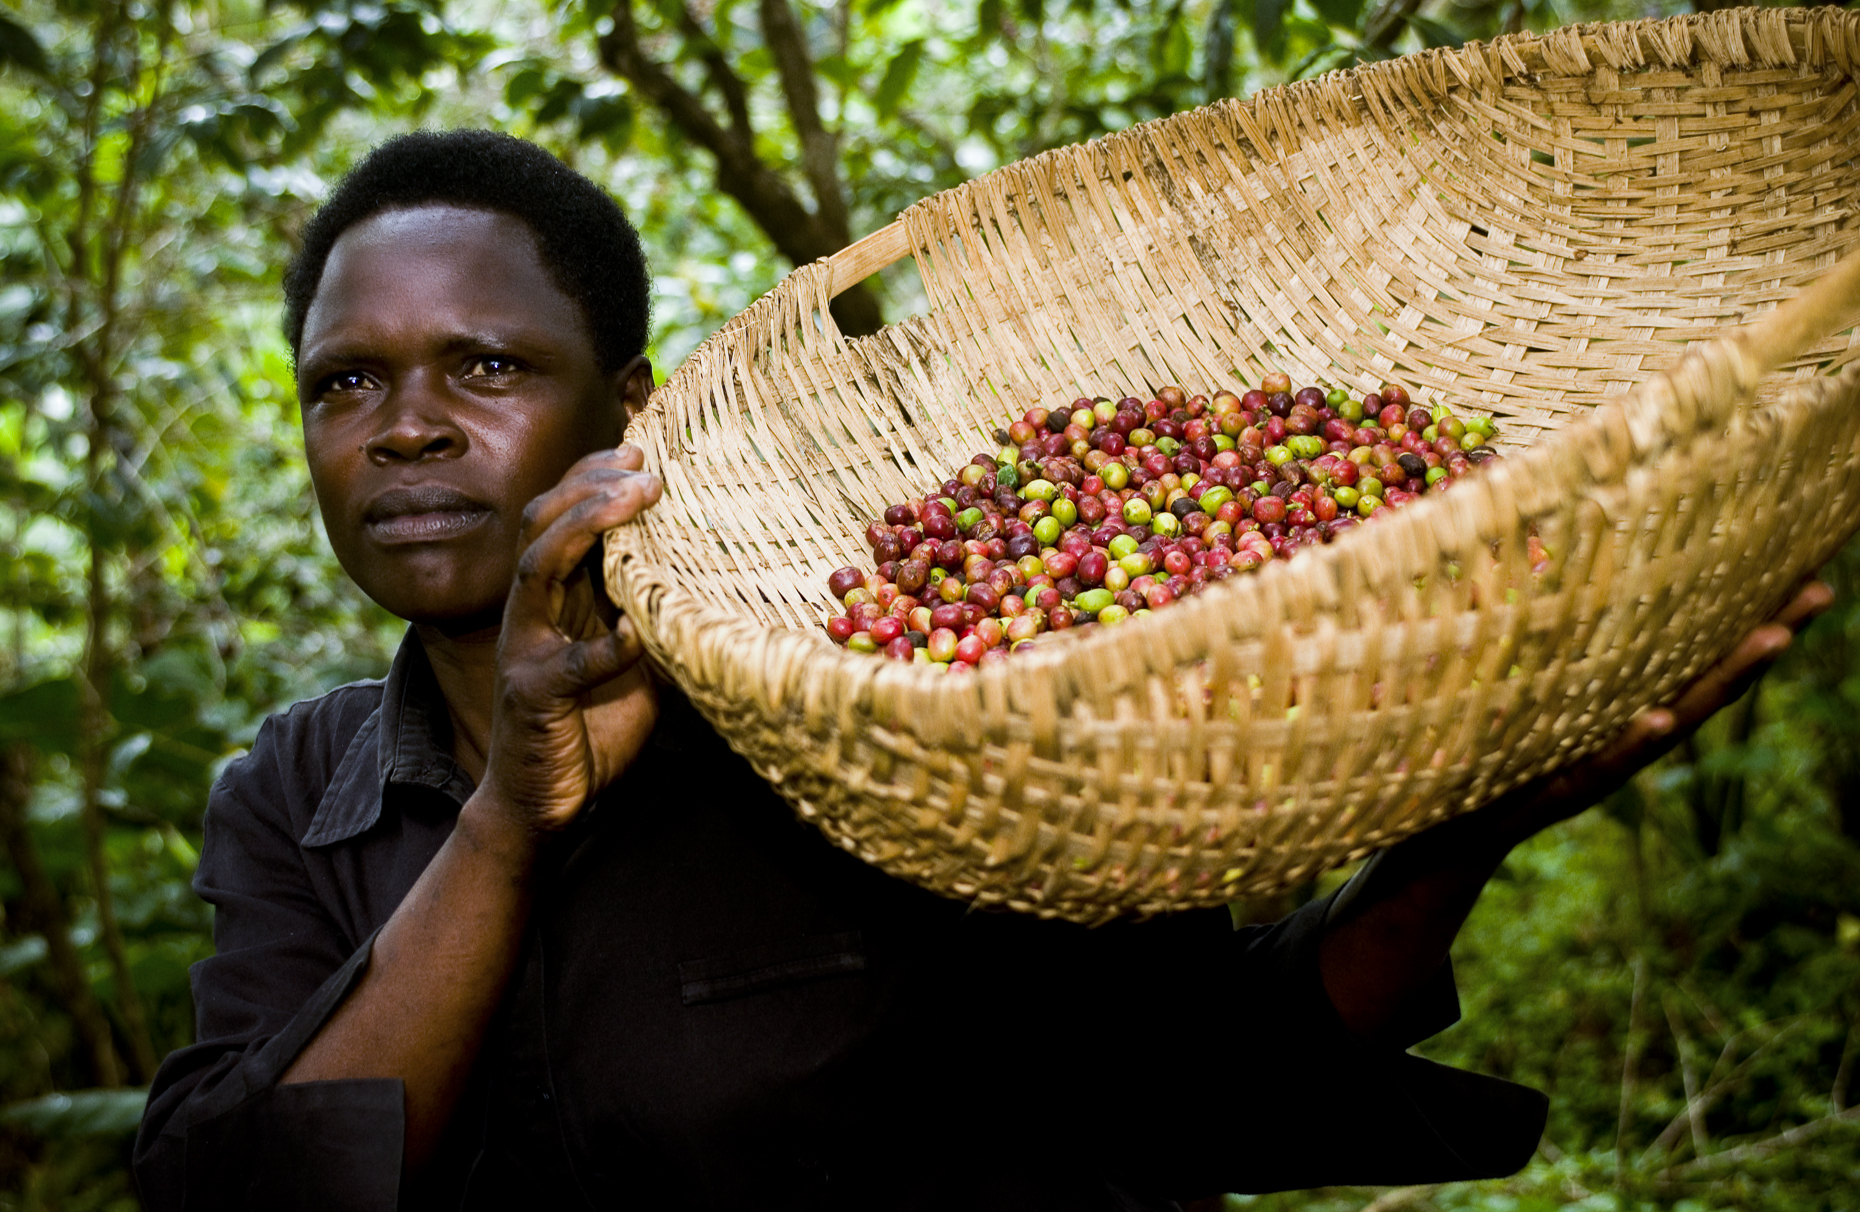 Fair trade coffee farmer, Uganda